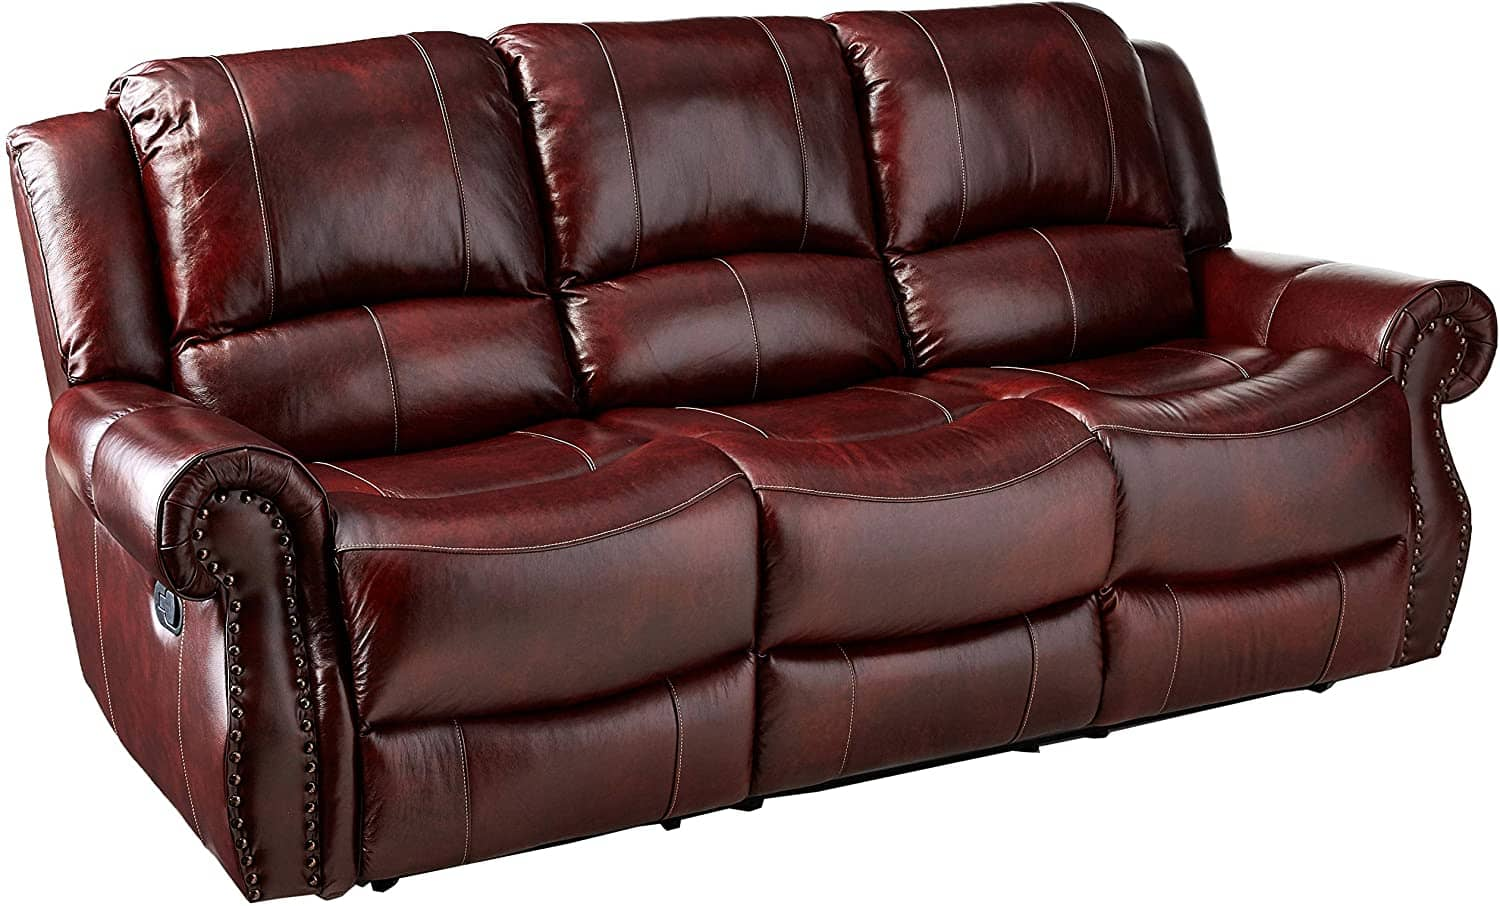 The 8 Best Reclining Sofas Most Comfortable Recliners Reviews Buyer S Guide